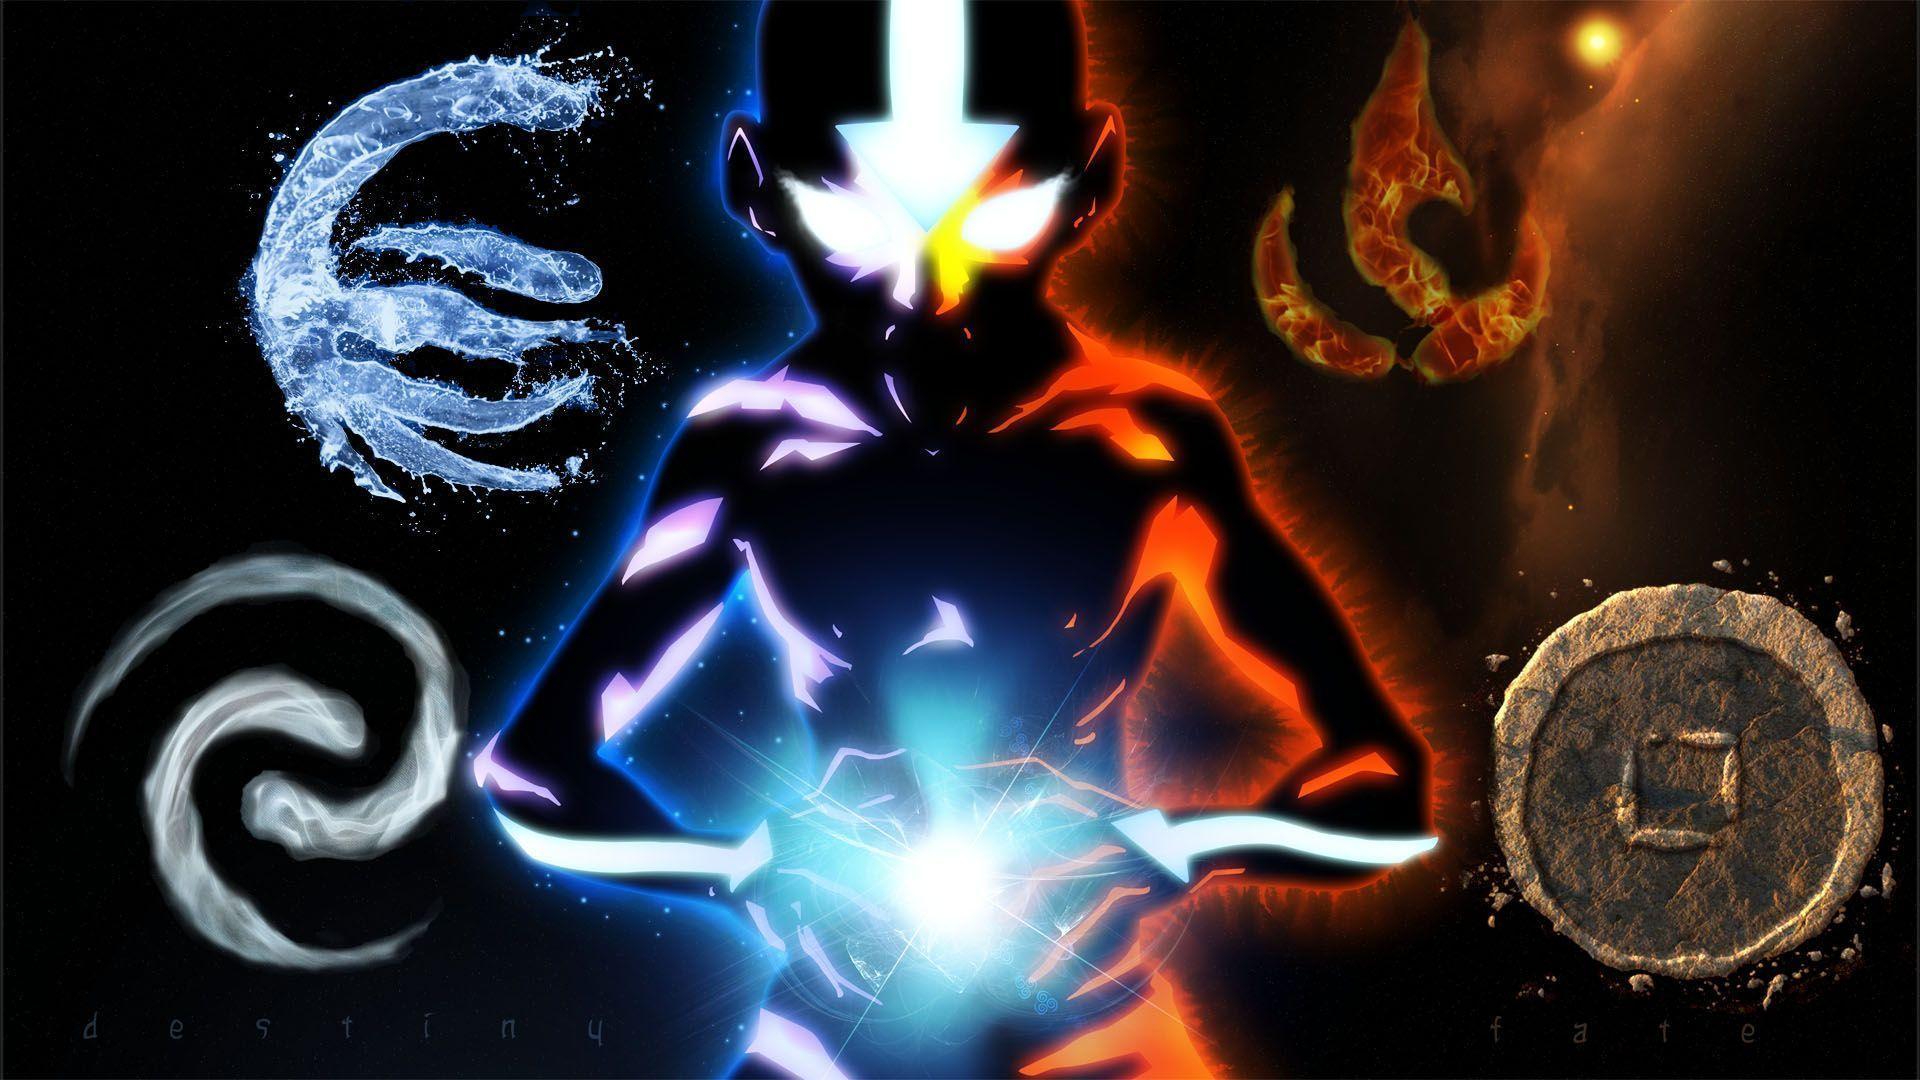 Avatar The Last Airbender Backgrounds - Wallpaper Cave